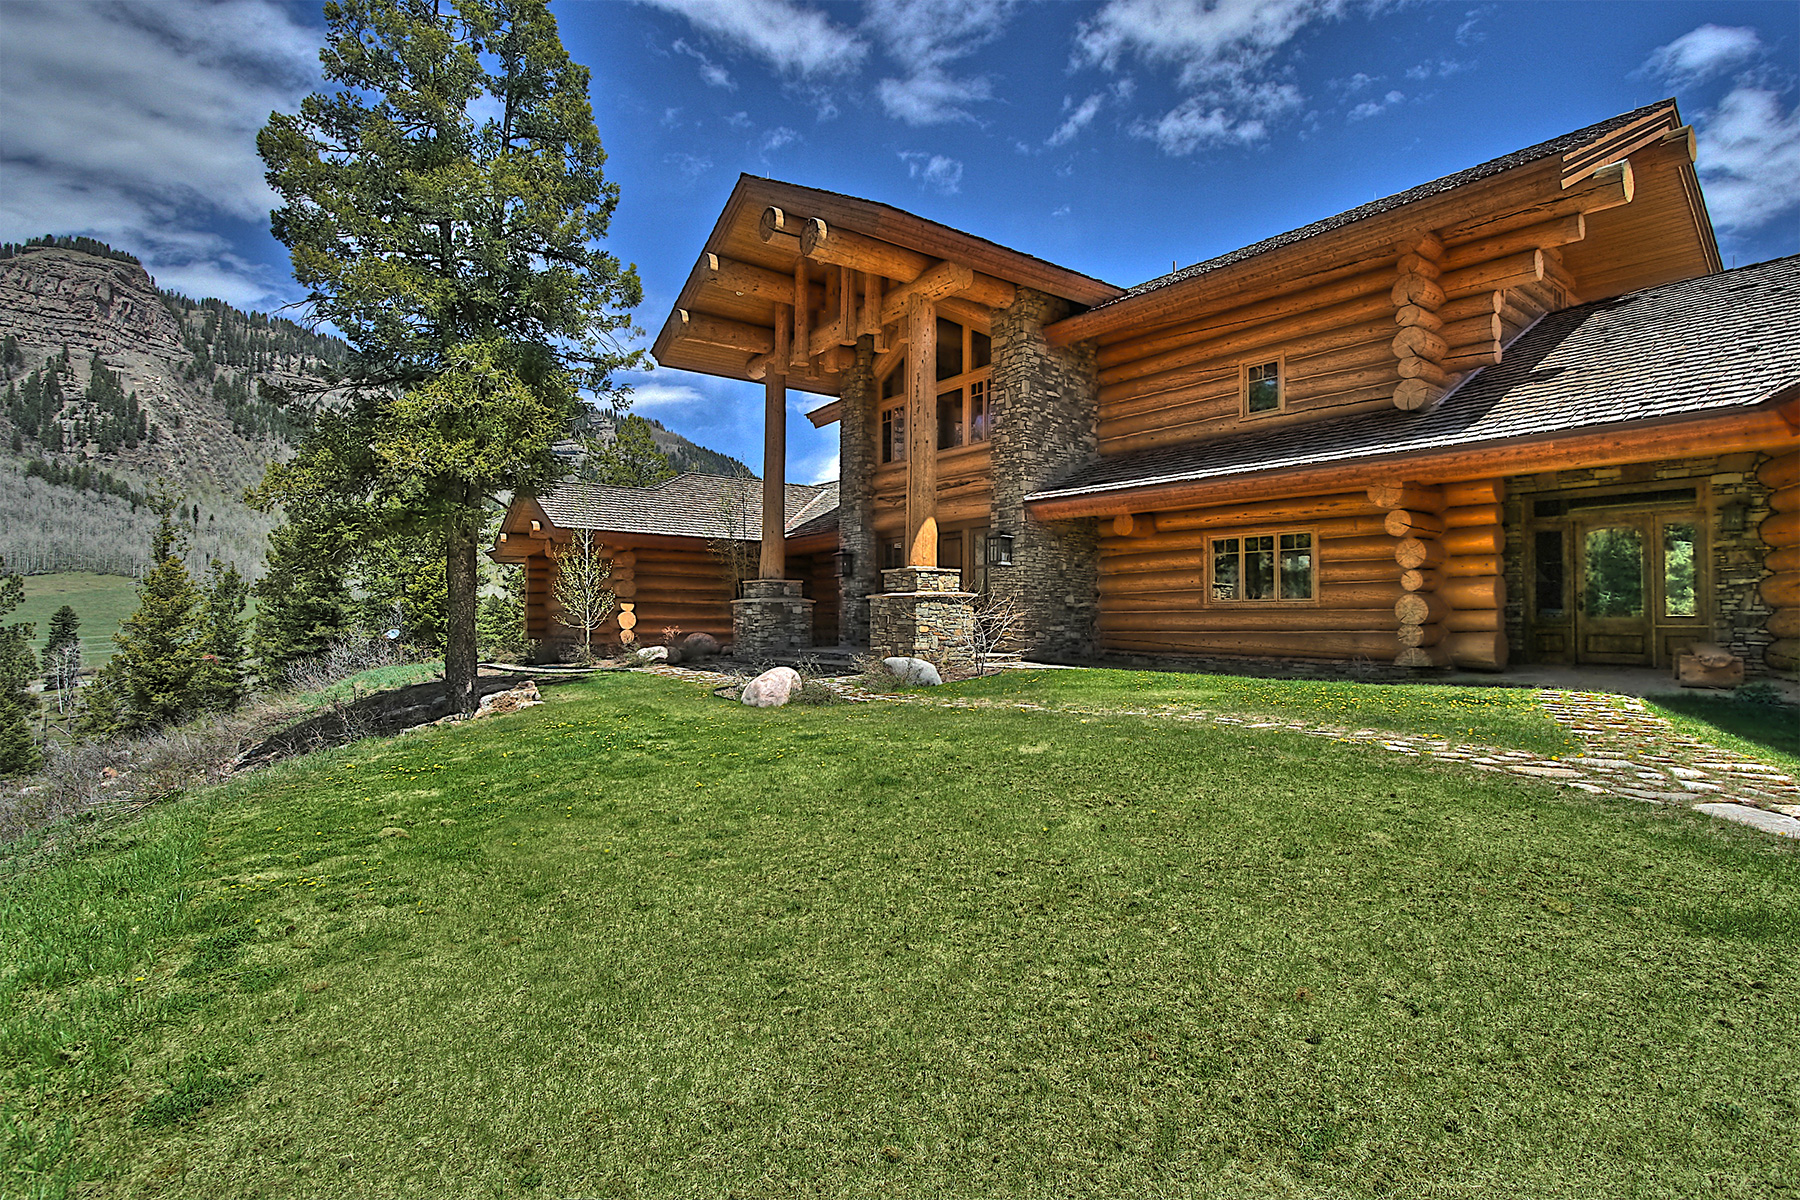 Casa Unifamiliar por un Venta en Mountain View Estate 463 & 464 Pinnacle View Drive Durango, Colorado 81301 Estados Unidos